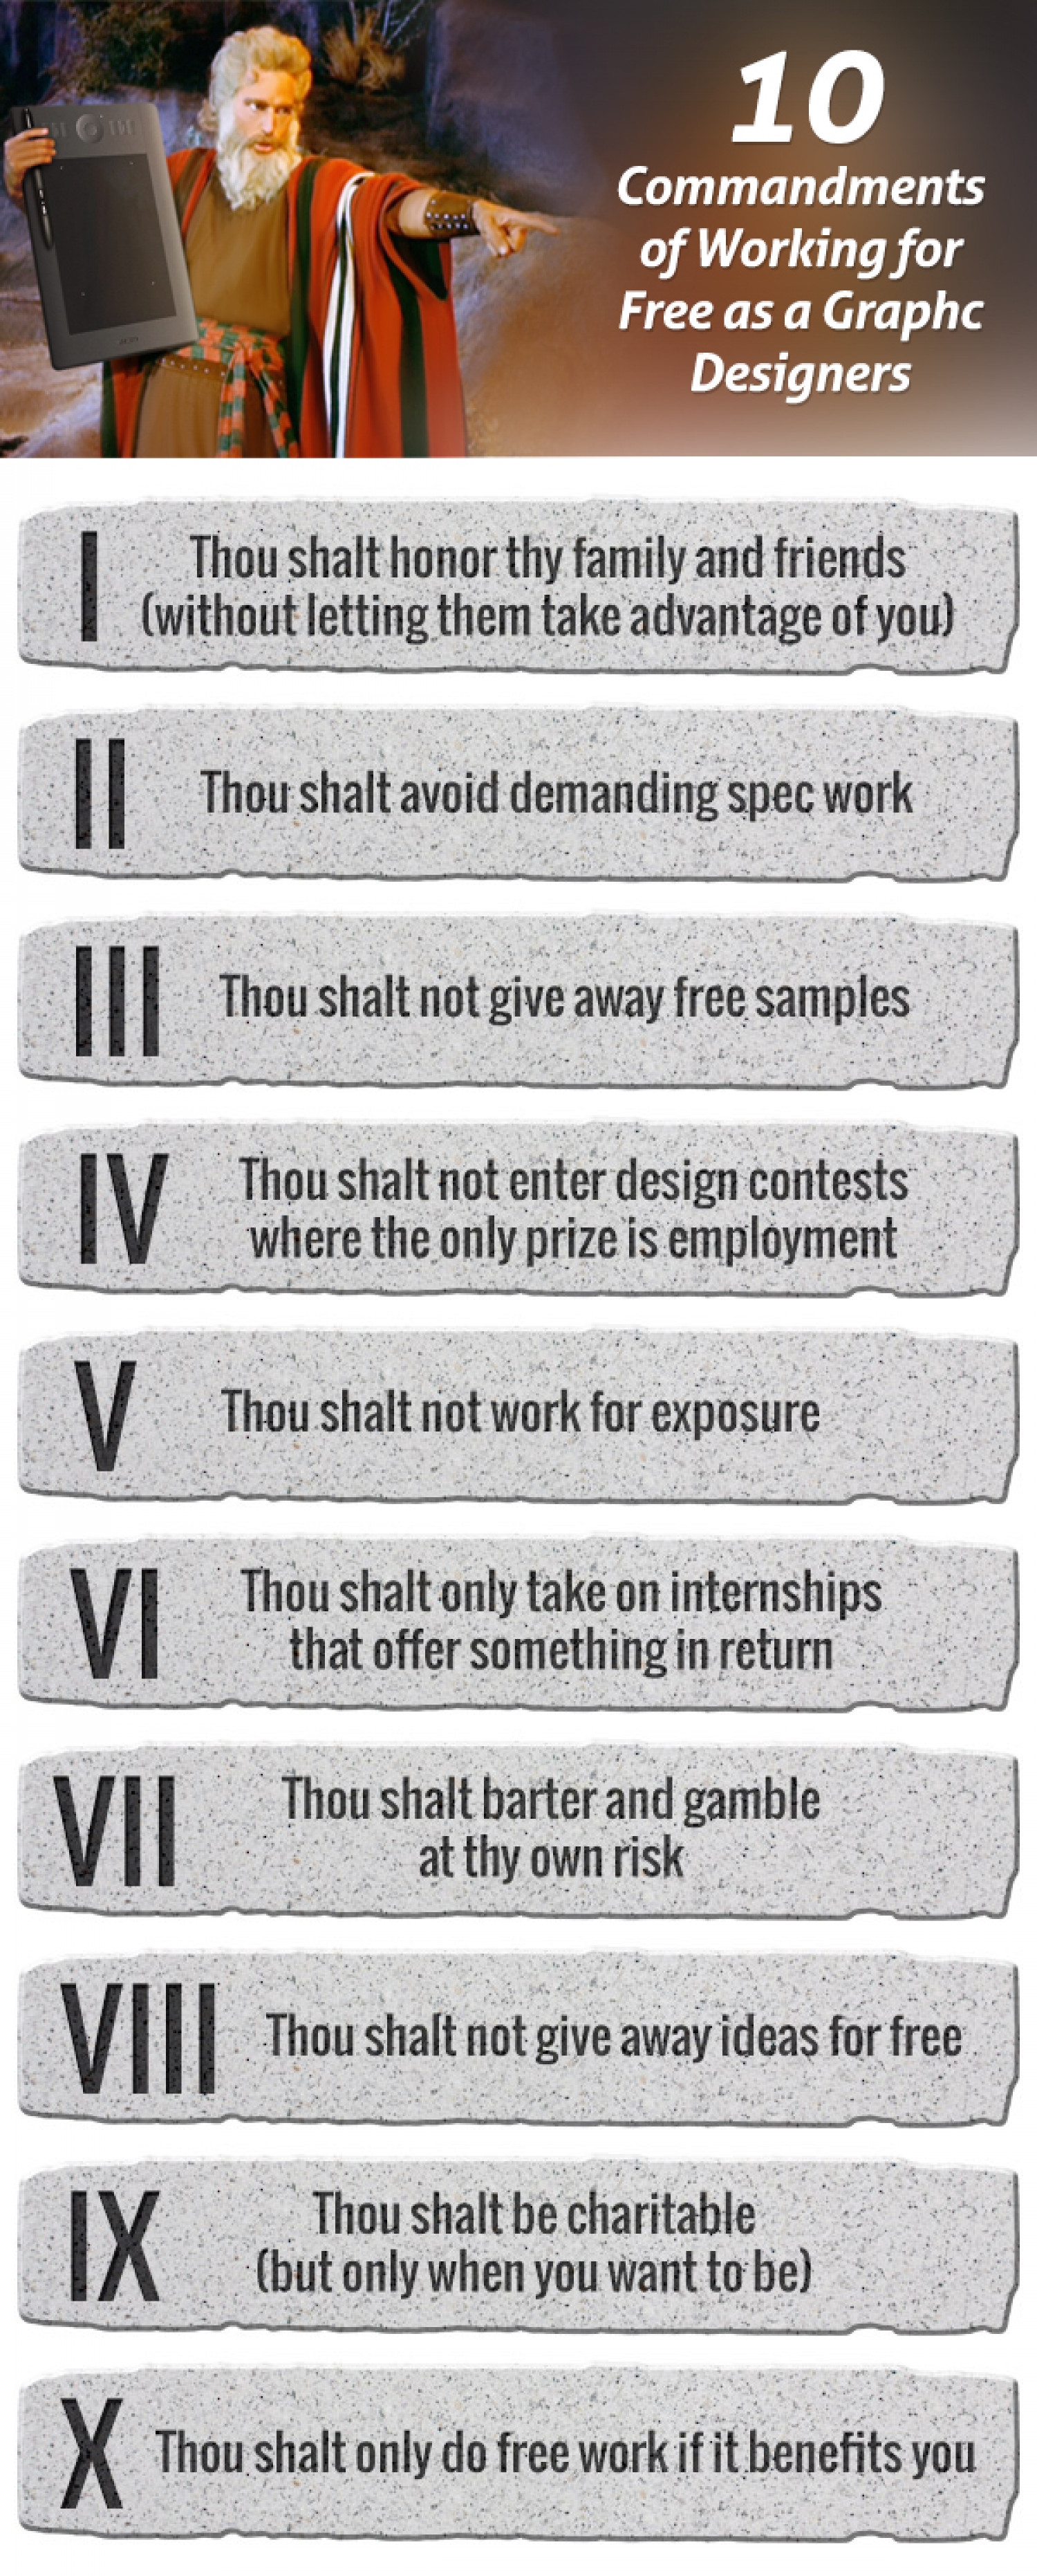 10 Commandments of Working for Free as a Graphic Designer Infographic